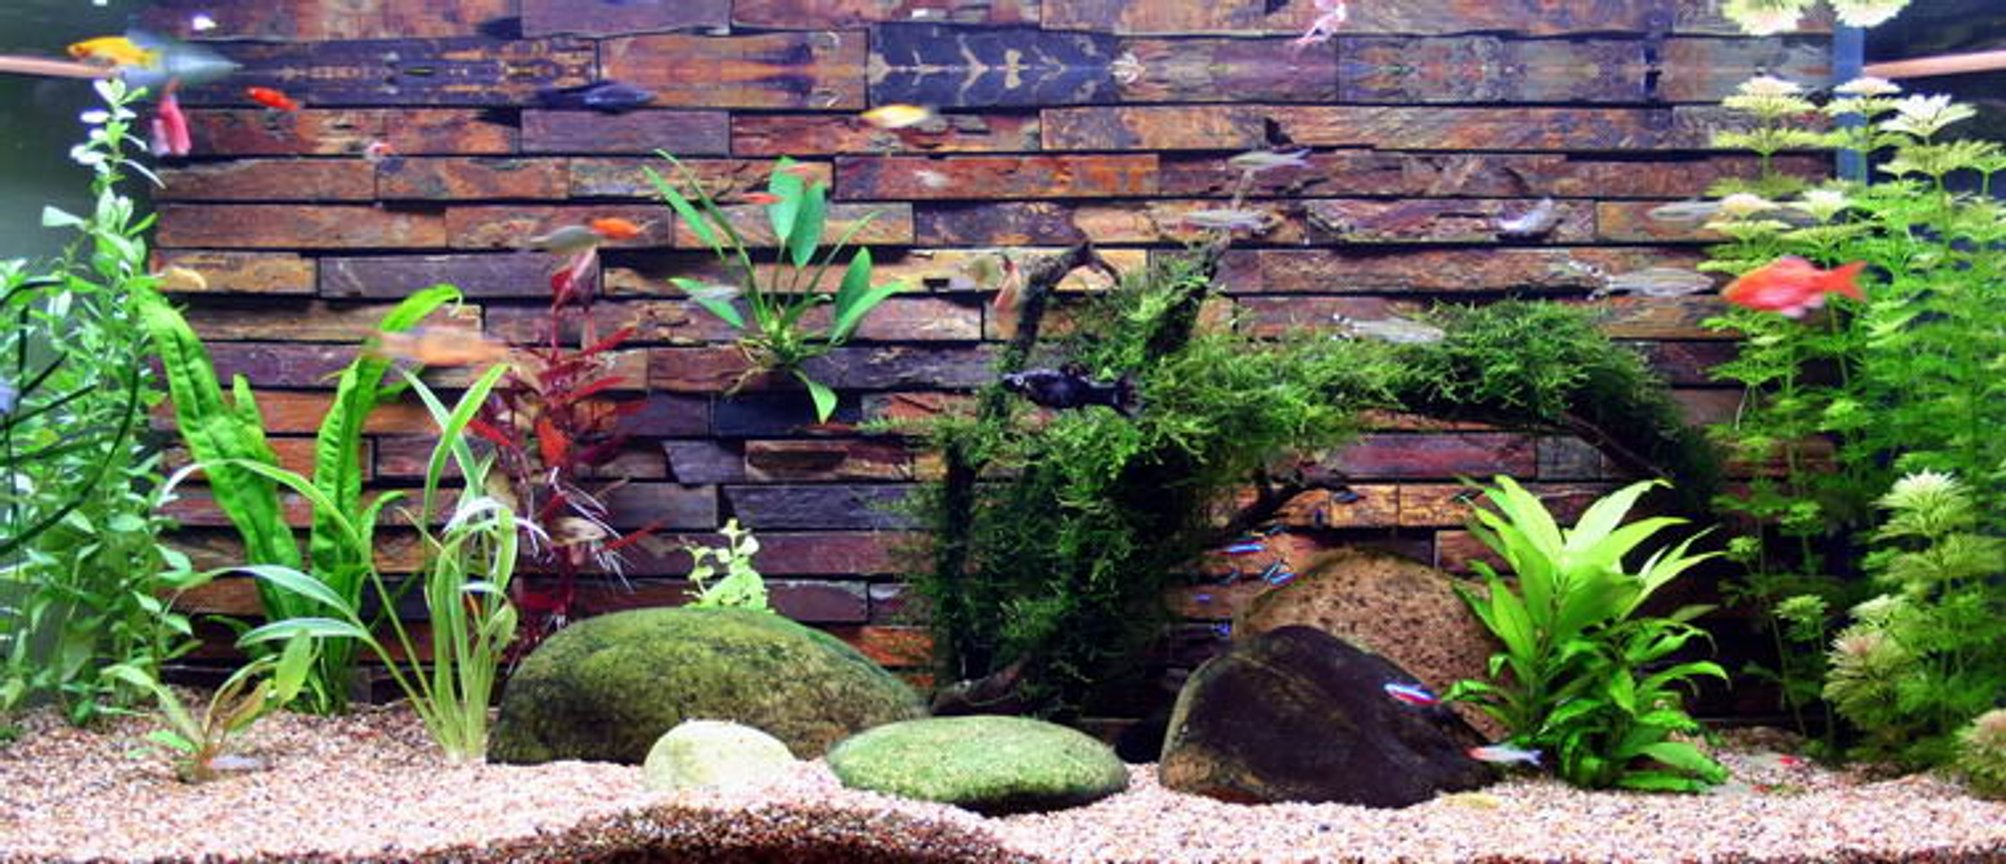 50 gallons planted tank (mostly live plants and fish) - Heres my tank it hasn't been going long but I like it so far. Backing is done with slate tiles from the hardware shop. I siliconed them inside the tank. After a year they dont look as nice anymore as they are covered in algae, but still quite nice. Baby fish like to hide in the cracks and survive quite well. New platys are always turning up.